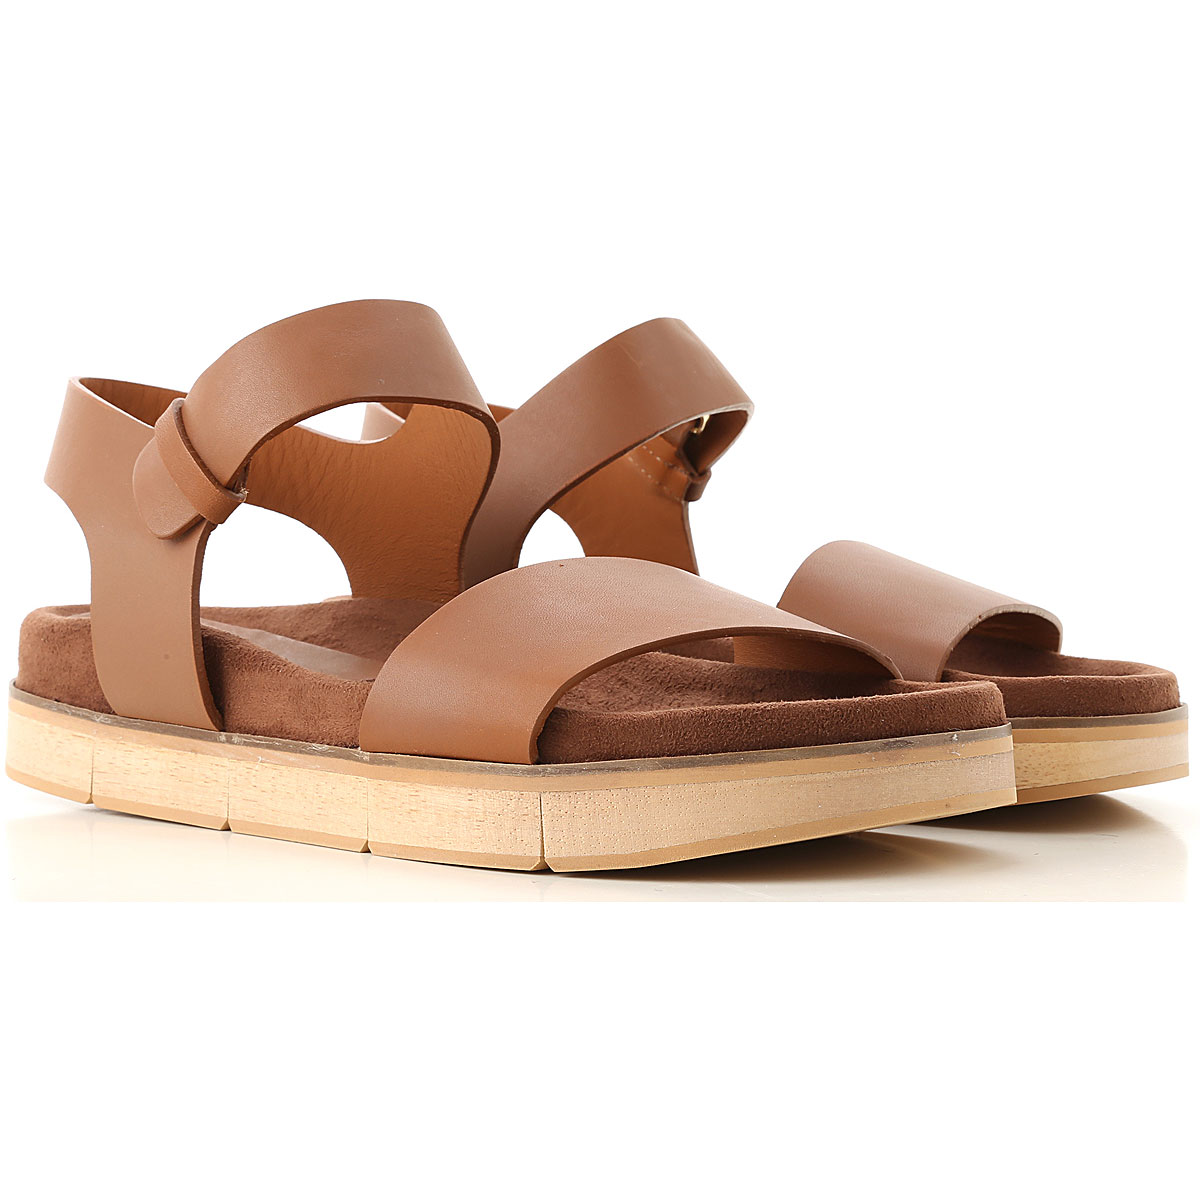 Paloma Barcelo Sandals for Women Leather USA - GOOFASH